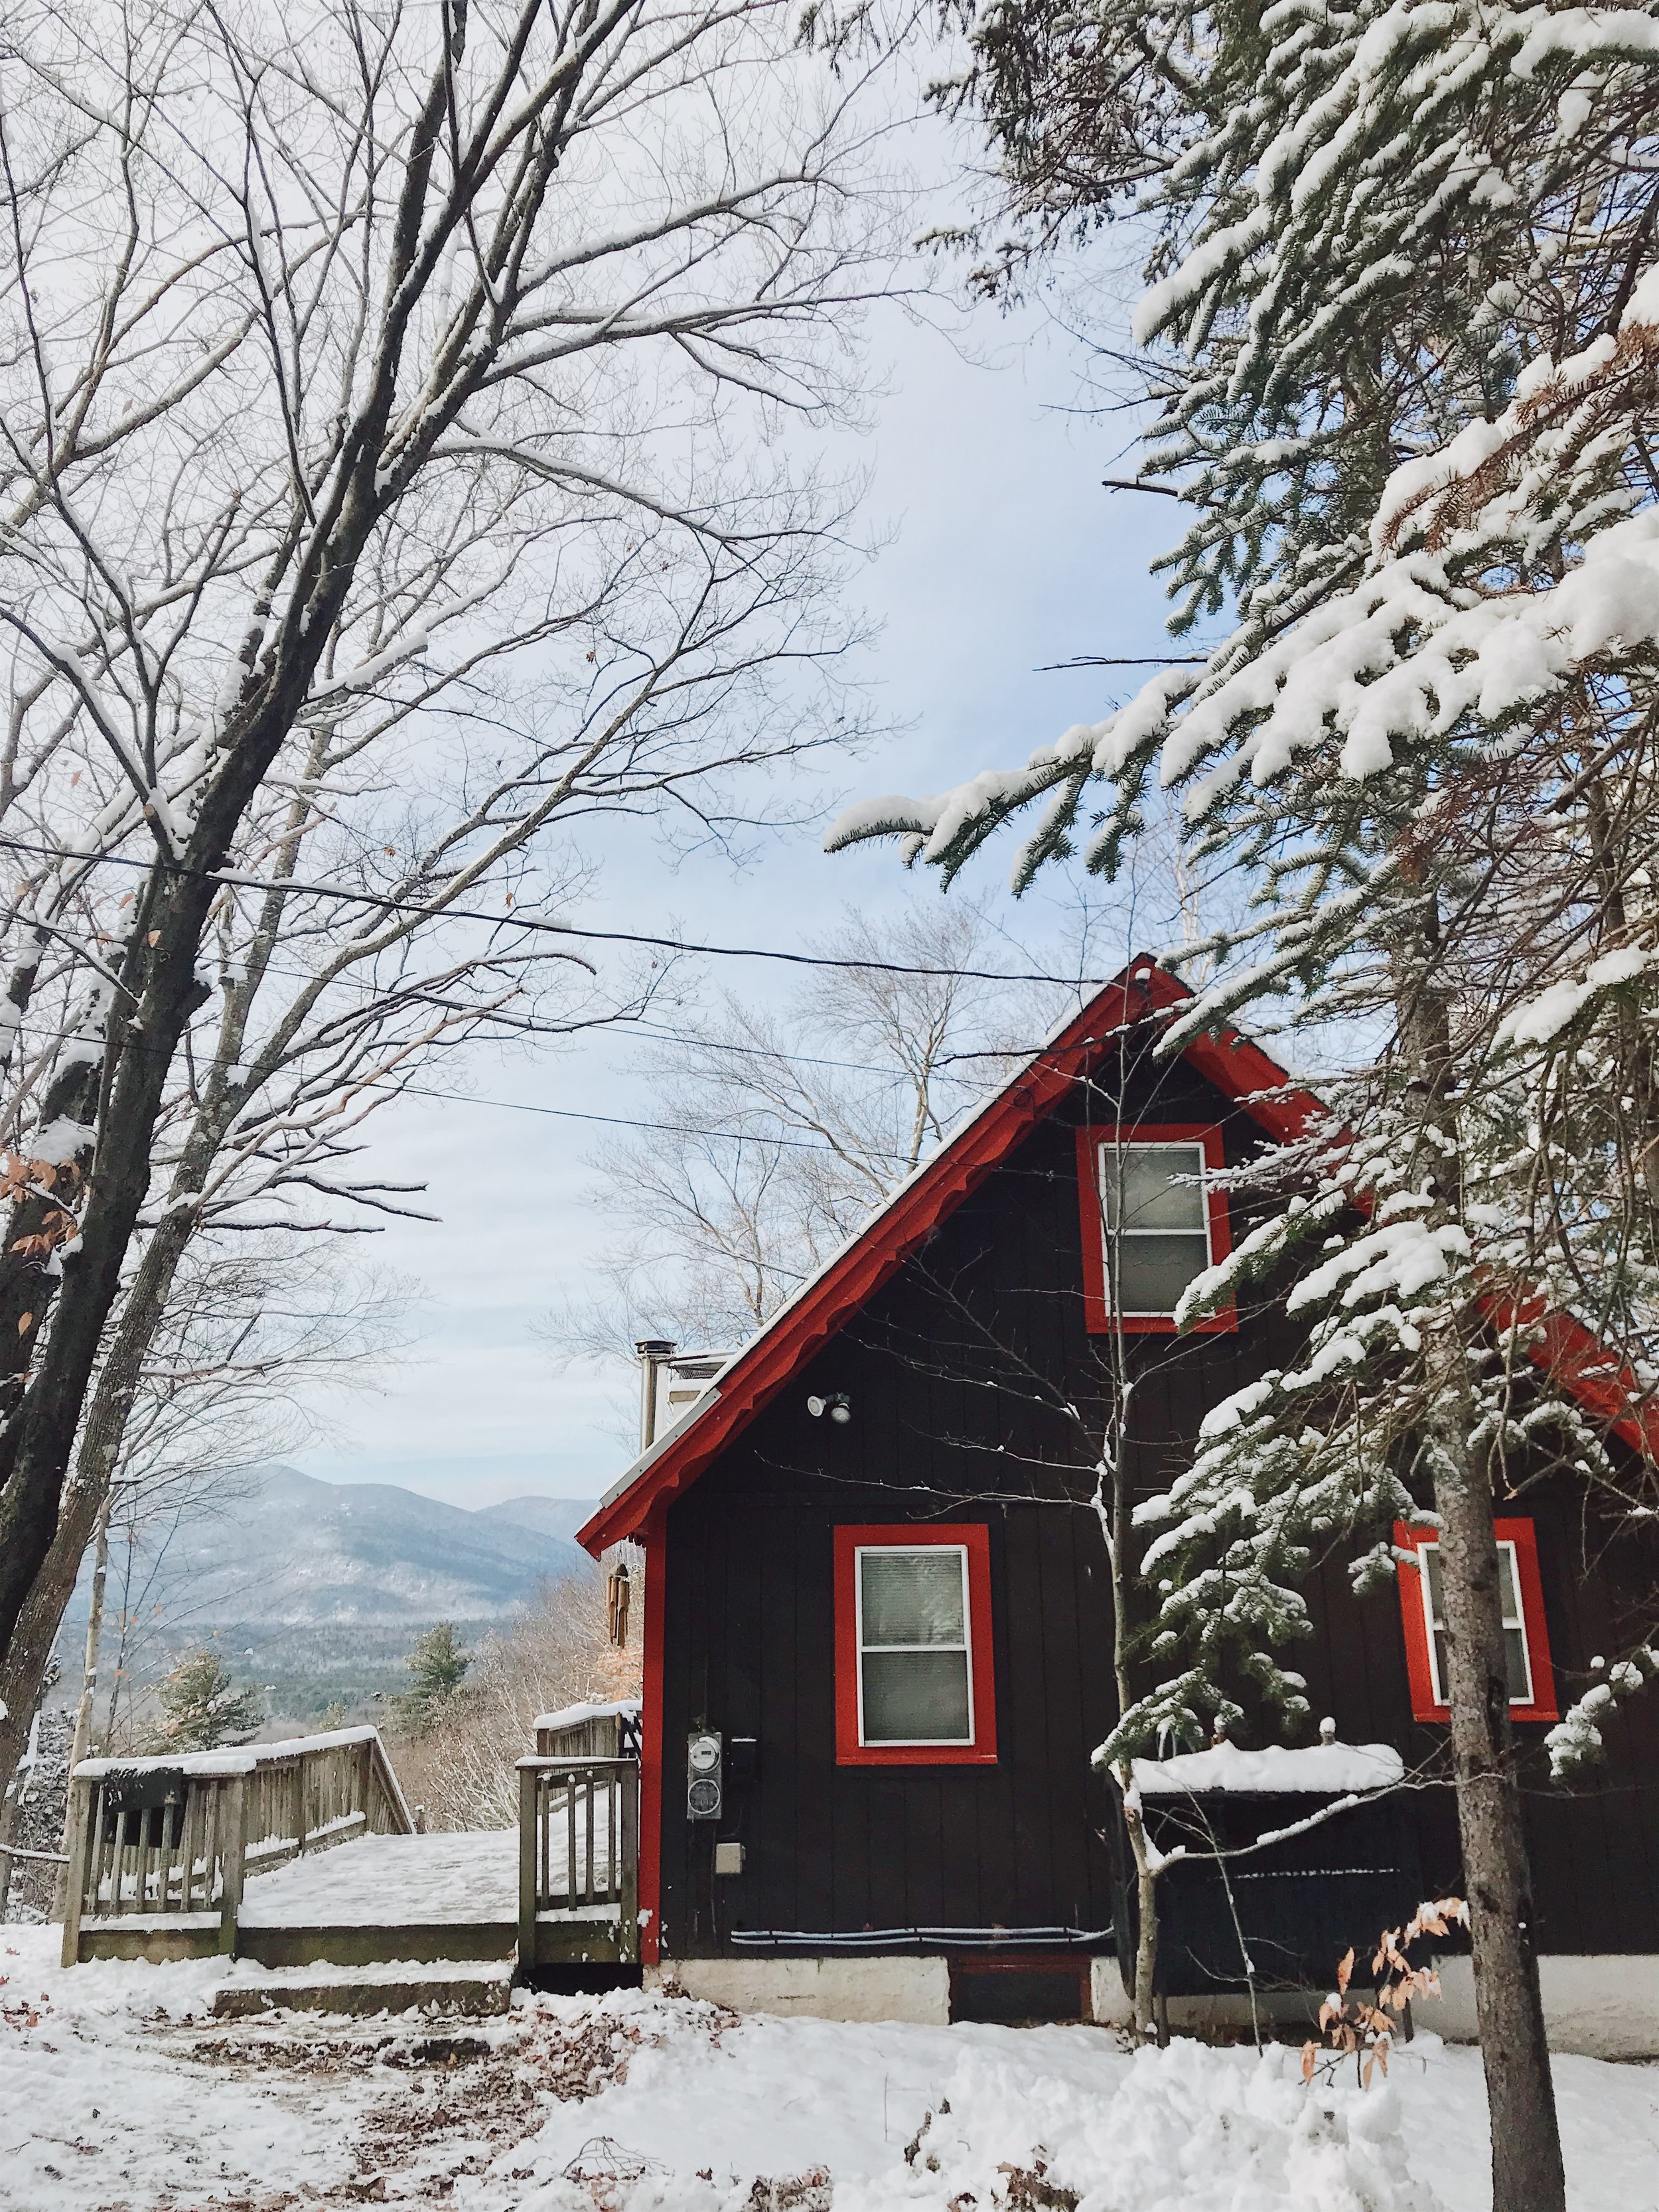 Established in 2017 - Emily and Joe here - we are SO thrilled to invite you to stay at our cozy chalet in the White Mountains. Read on to see why Vienna Lodge means so much to us.